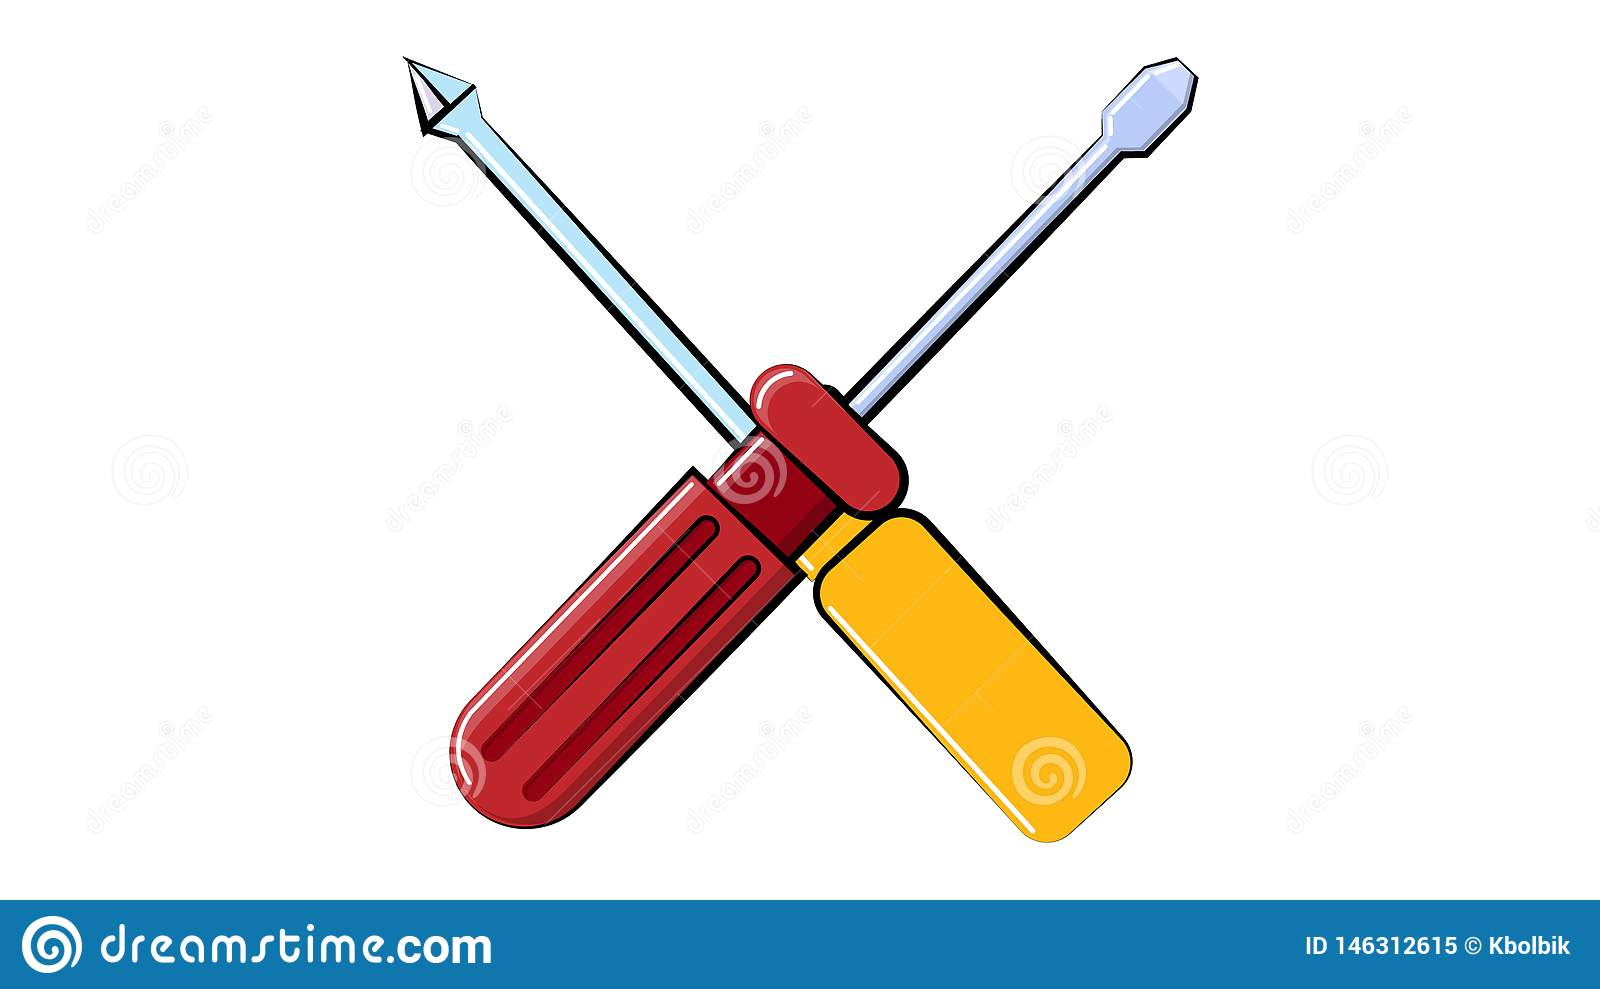 Icon construction red and yellow flat and cross screwdrivers for repair, a crossed tool on a white background. Vector illustration